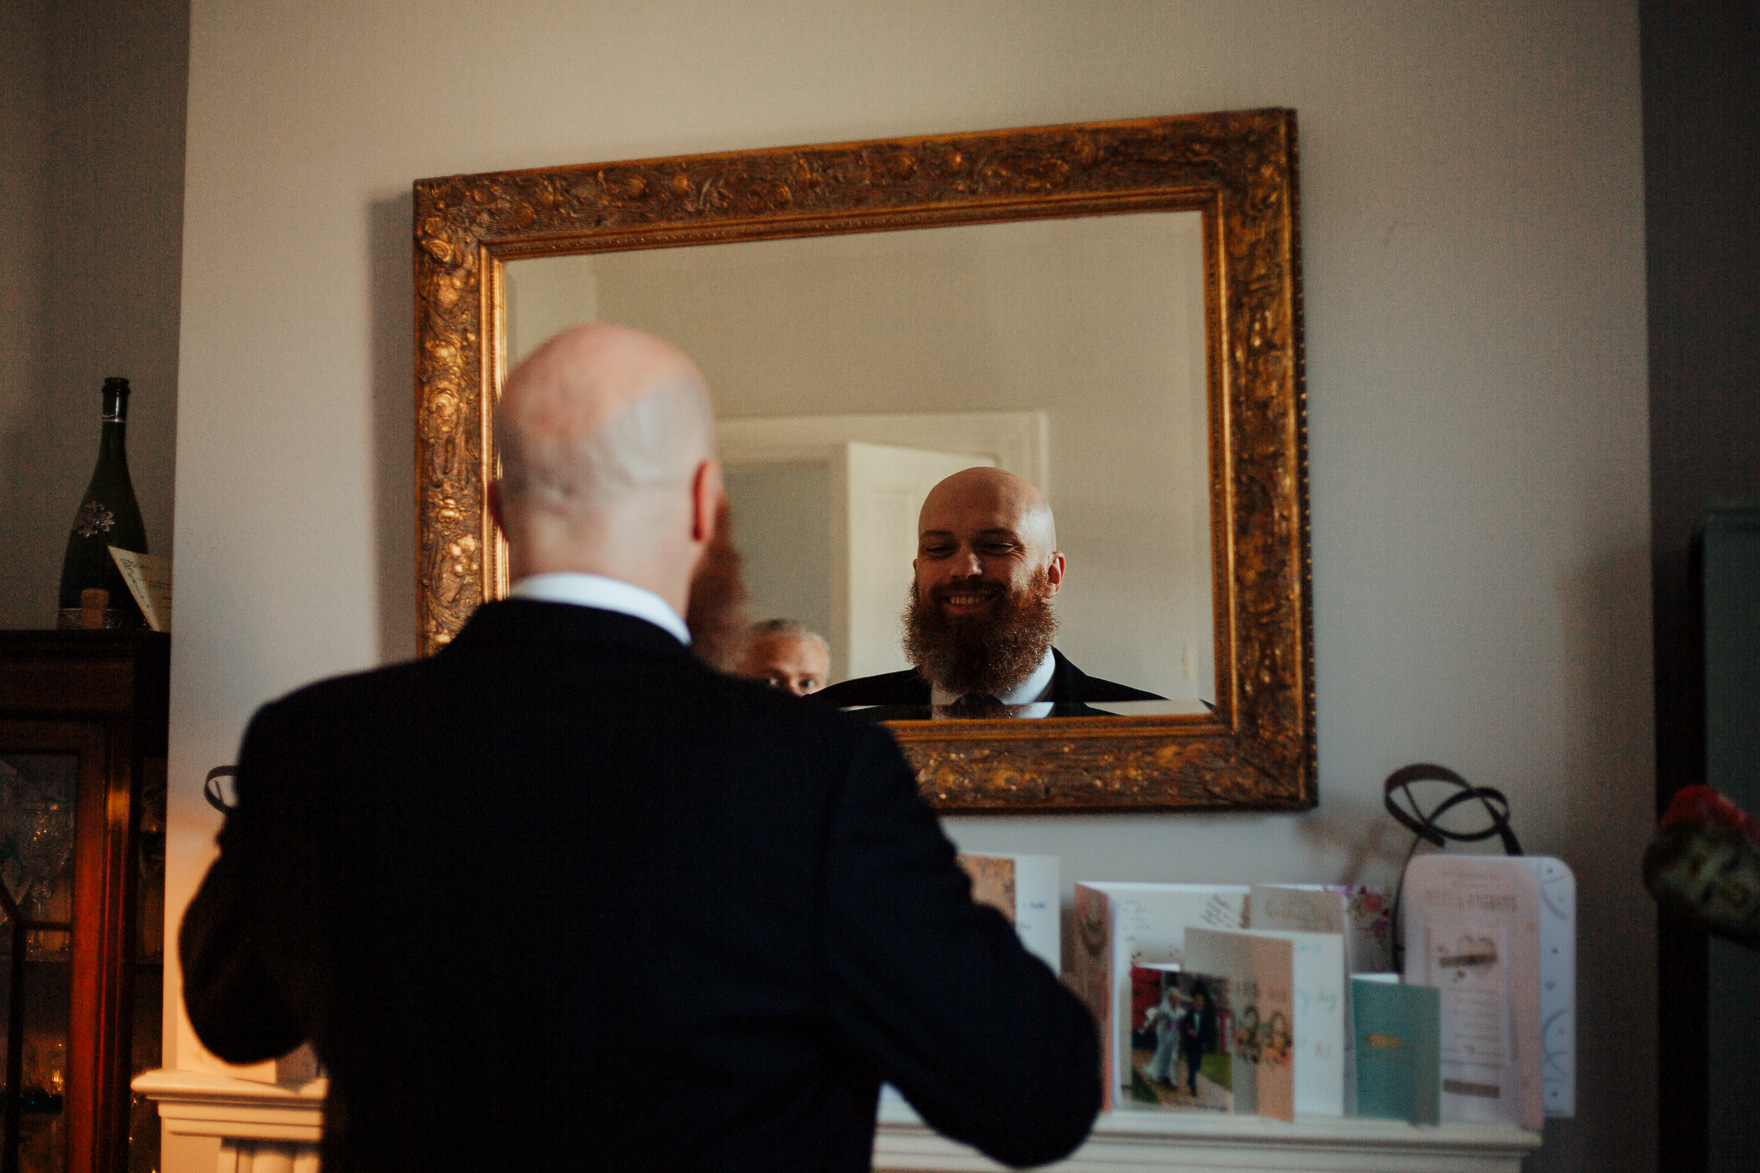 A man standing in front of a mirror posing for the camera